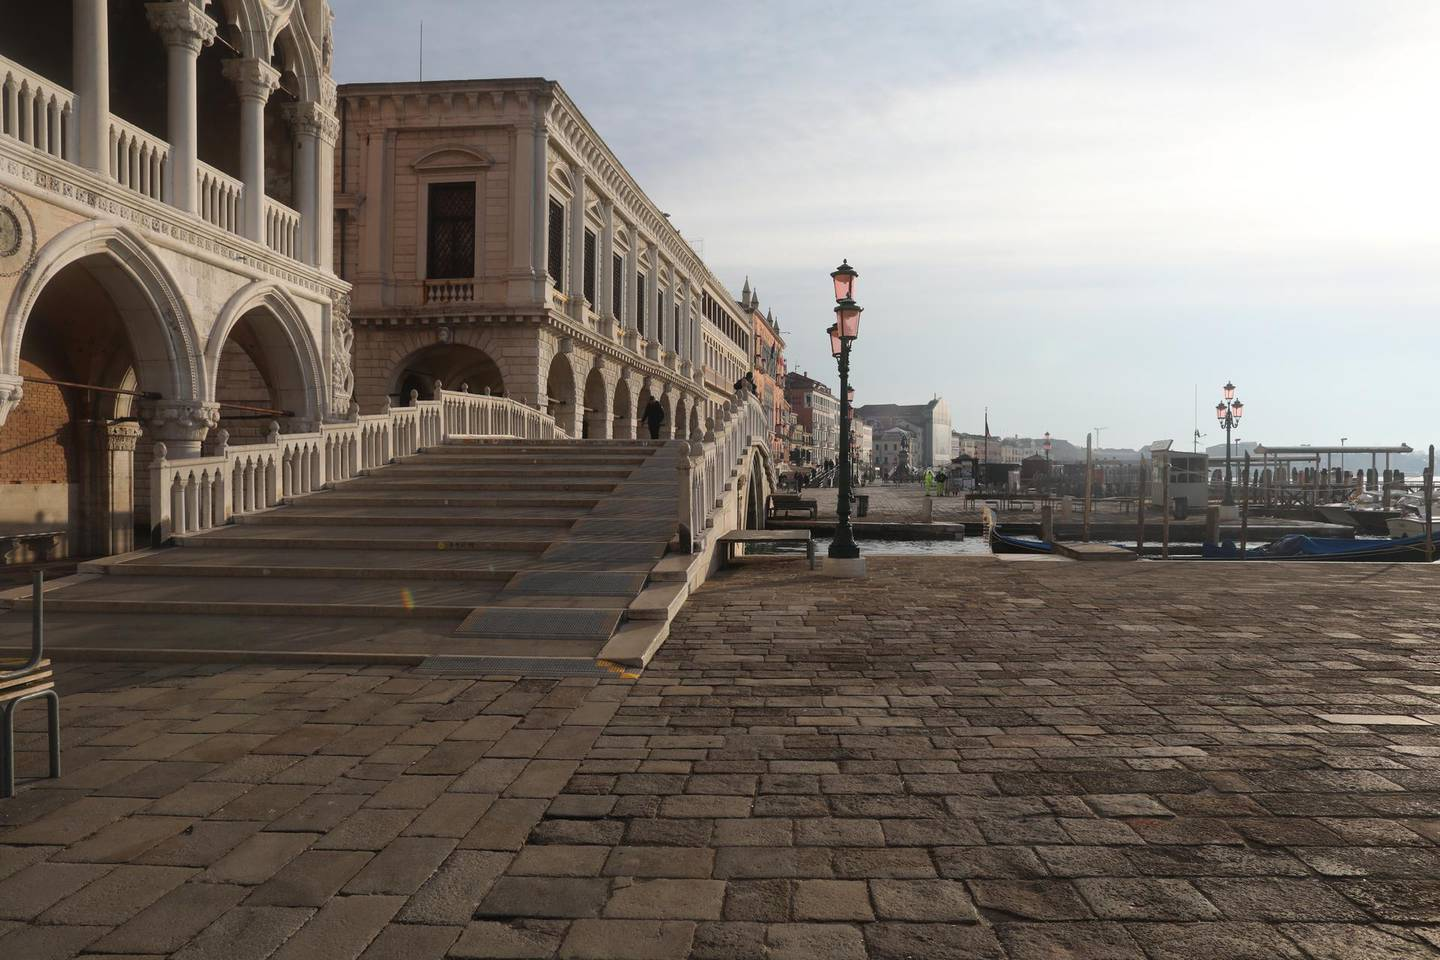 """VENICE, ITALY - MARCH 9: A completely empty Riva degli Schiavoni next to San Marco Square is seen on March 9, 2020 in Venice, Italy. Prime Minister Giuseppe Conte announced a """"national emergency"""" due to the coronavirus outbreak and imposed quarantines on the Lombardy and Veneto regions, which contain roughly a quarter of the country's population. Italy has the highest number of cases and fatalities in Europe.  The movements in and out are allowed only for work reasons, health reasons proven by a medical certificate.The justifications for the movements needs to be certified with a self-declaration by filling in forms provided by the police forces in charge of the checks. (Photo by Marco Di Lauro/Getty Images)"""